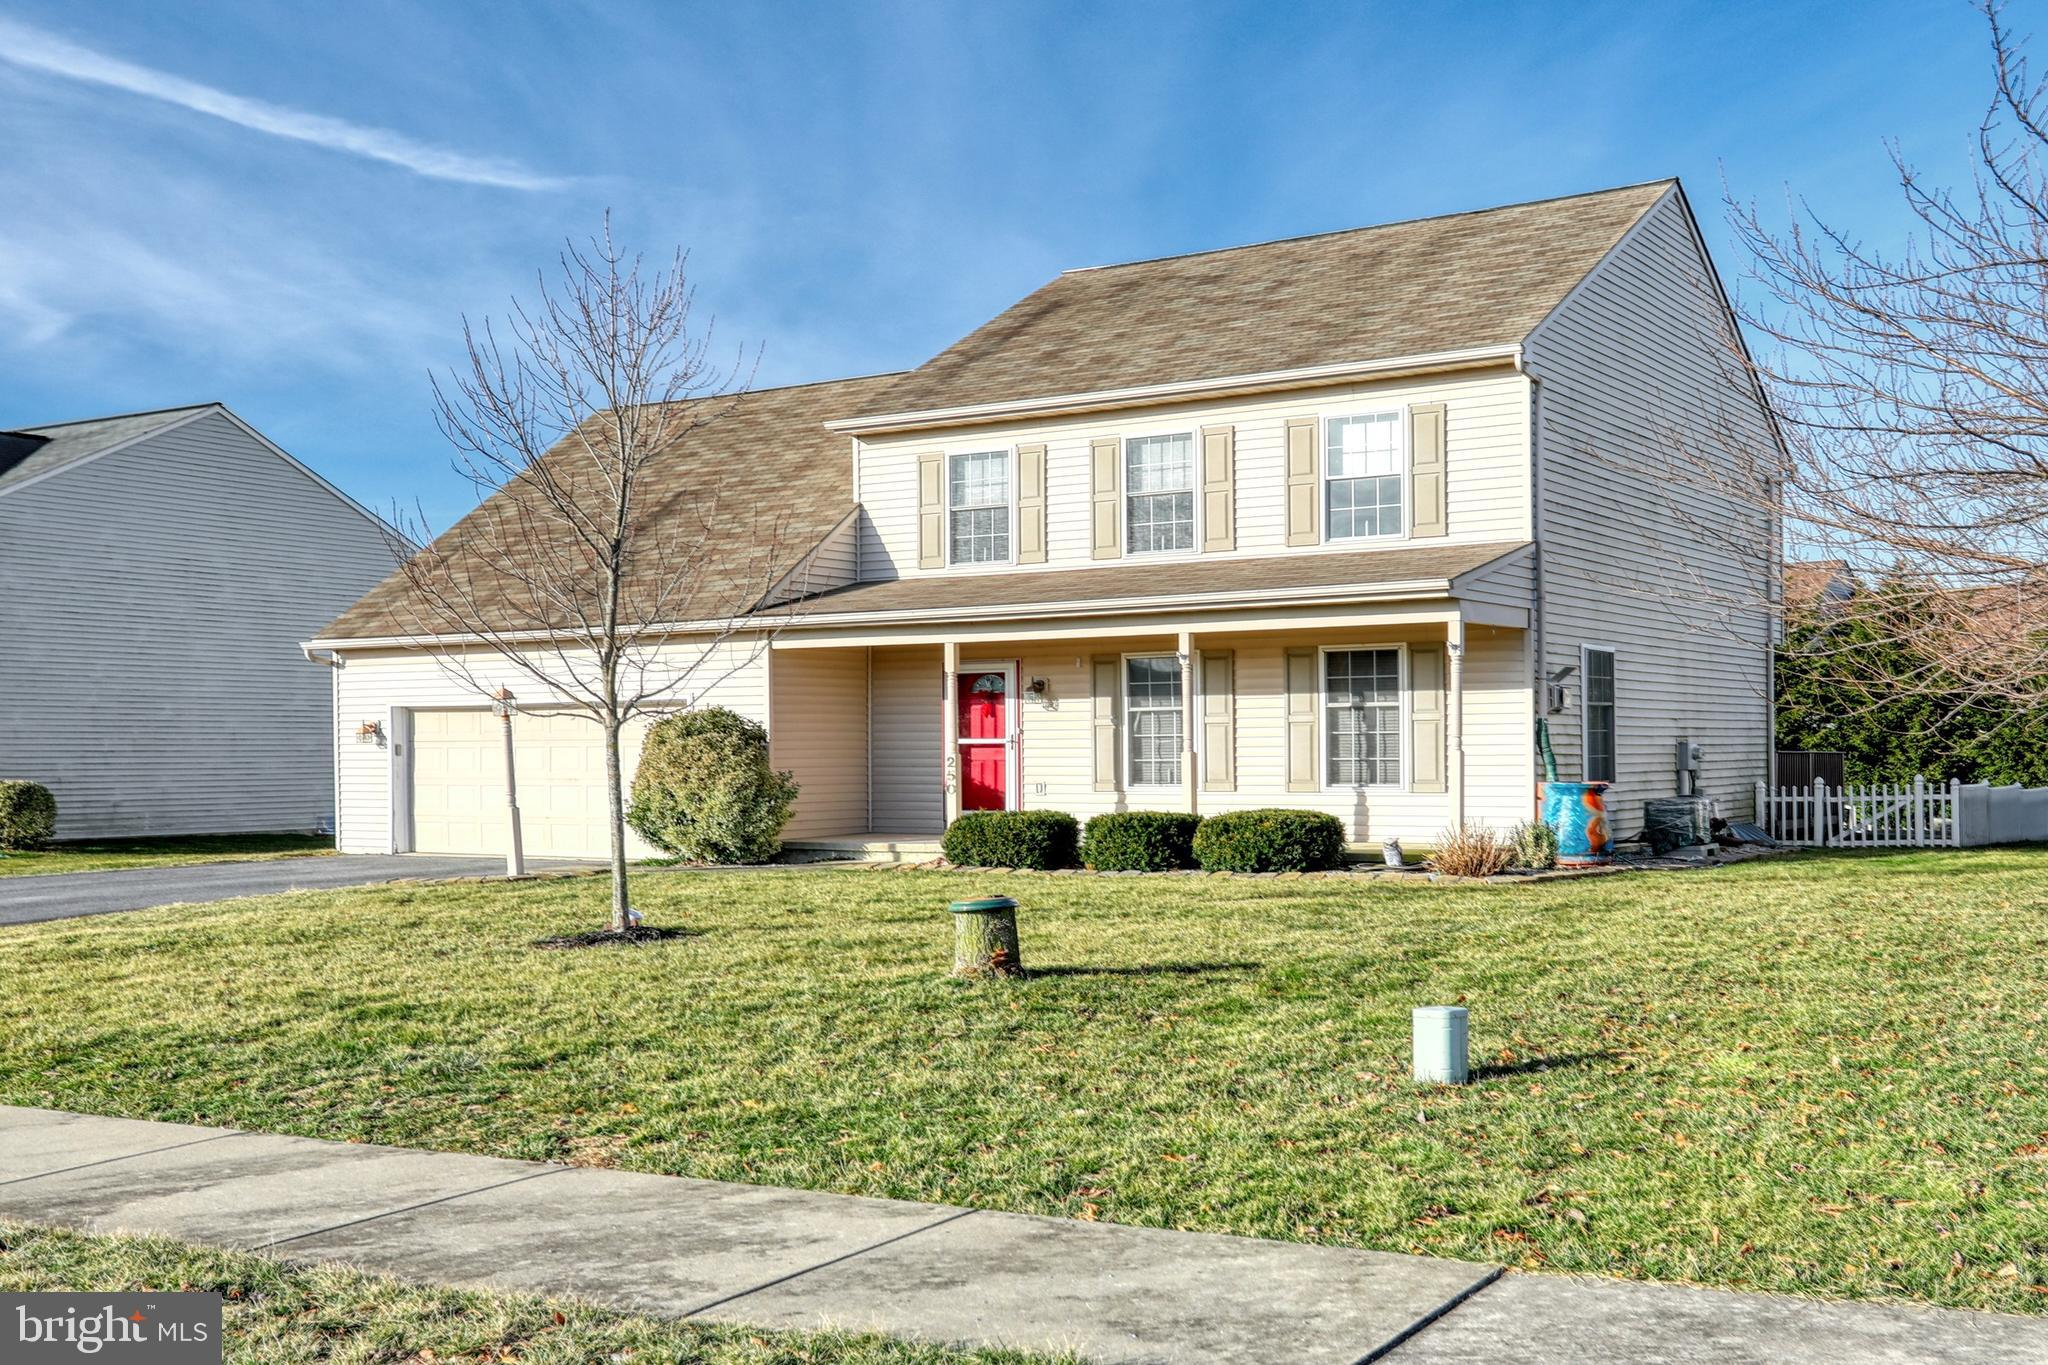 250 OLDE HICKORY ROAD, MOUNT WOLF, PA 17347